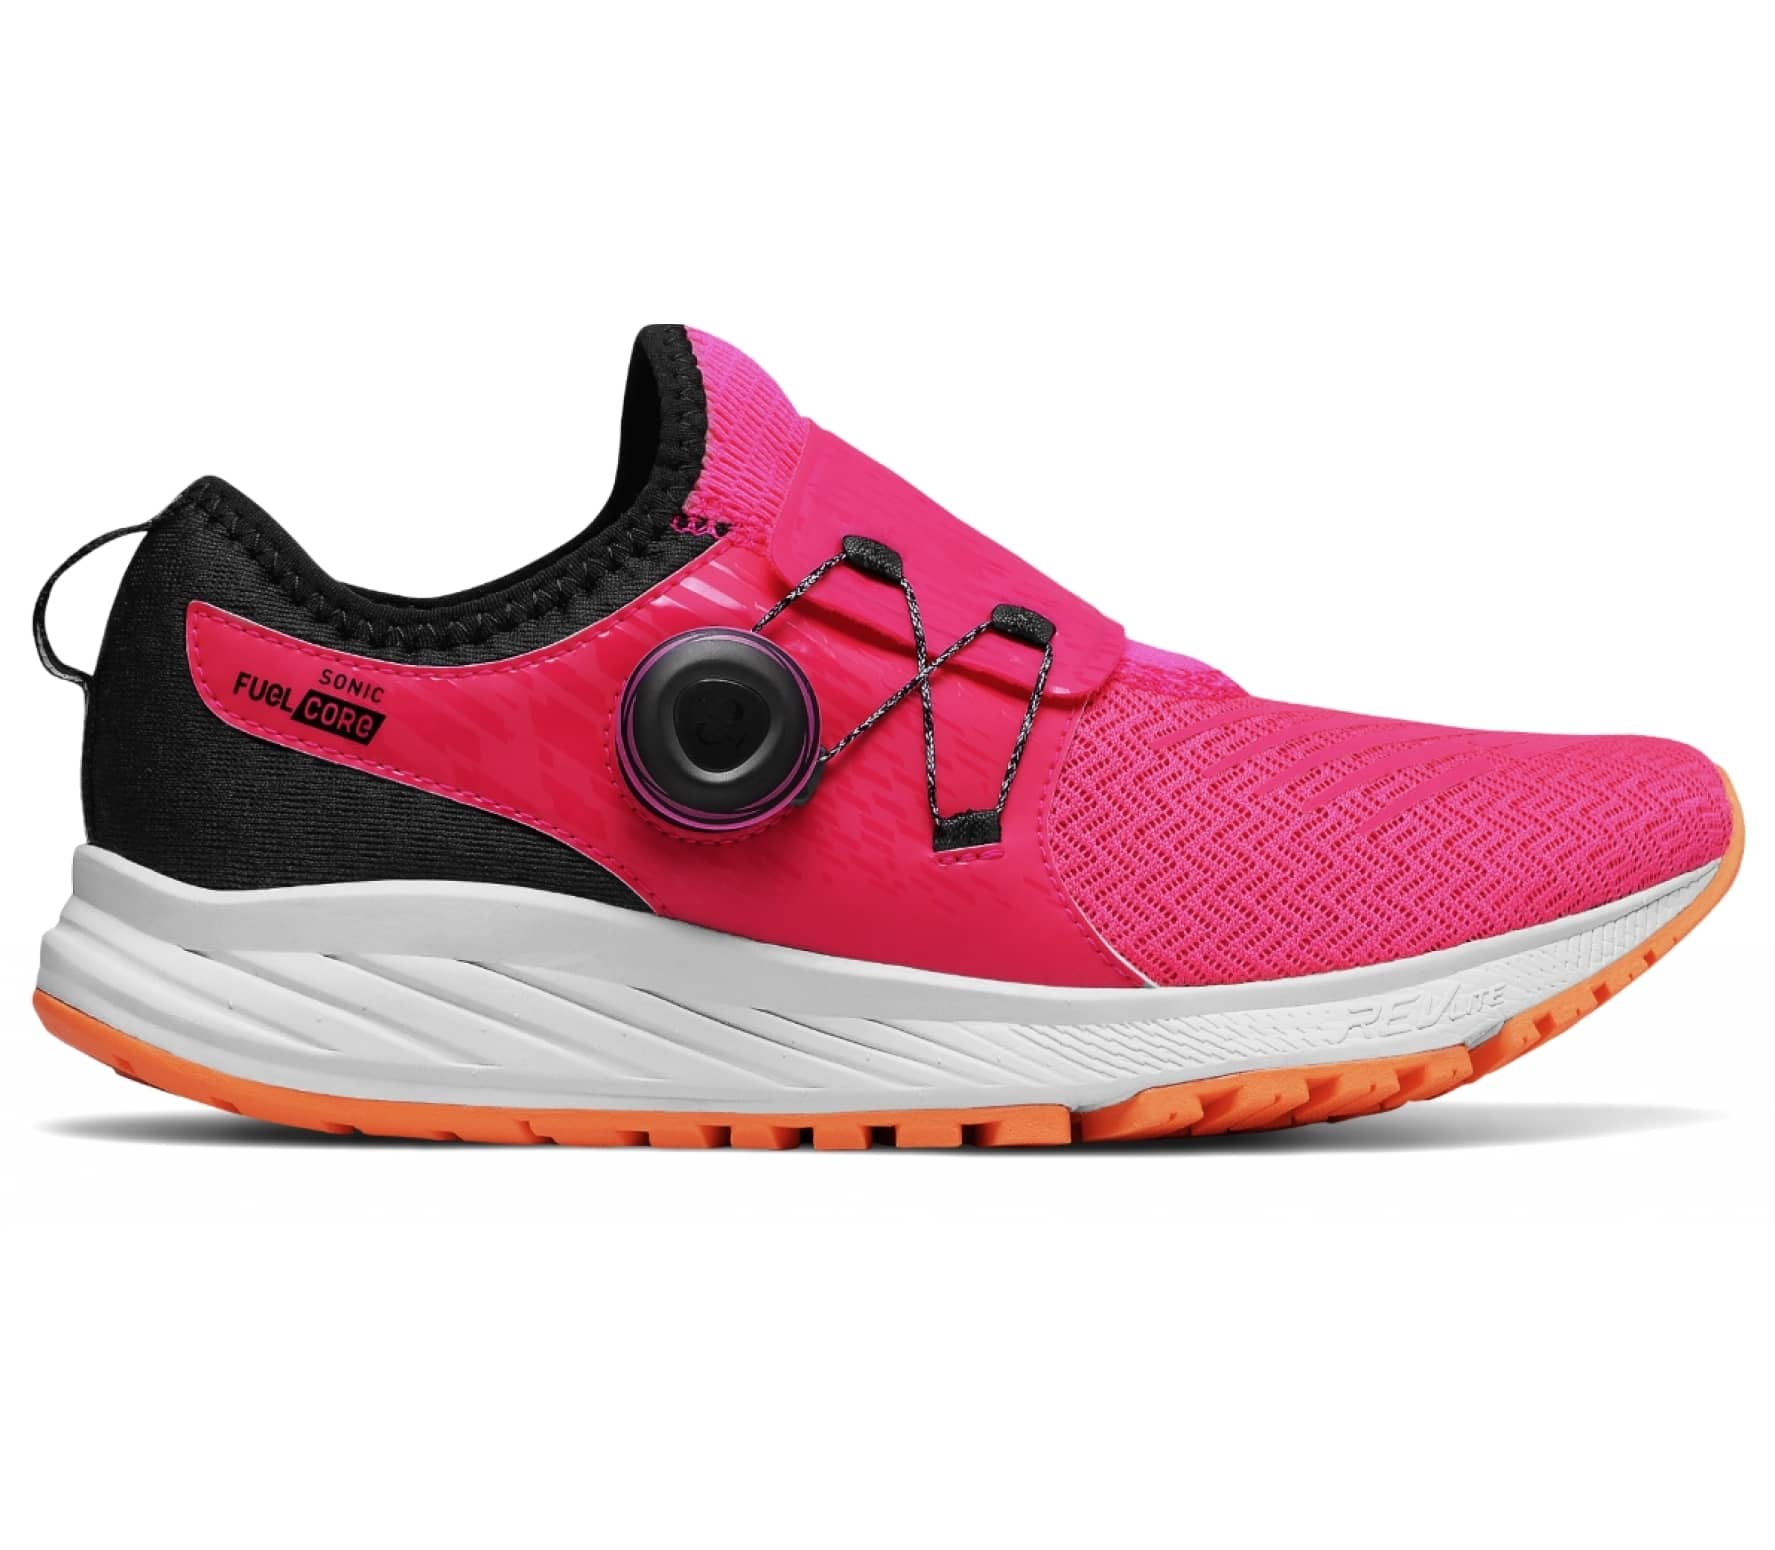 cheap for discount e17e3 c03cb New Balance - Fuelcore Sonic V1 women s running shoes (pink white)